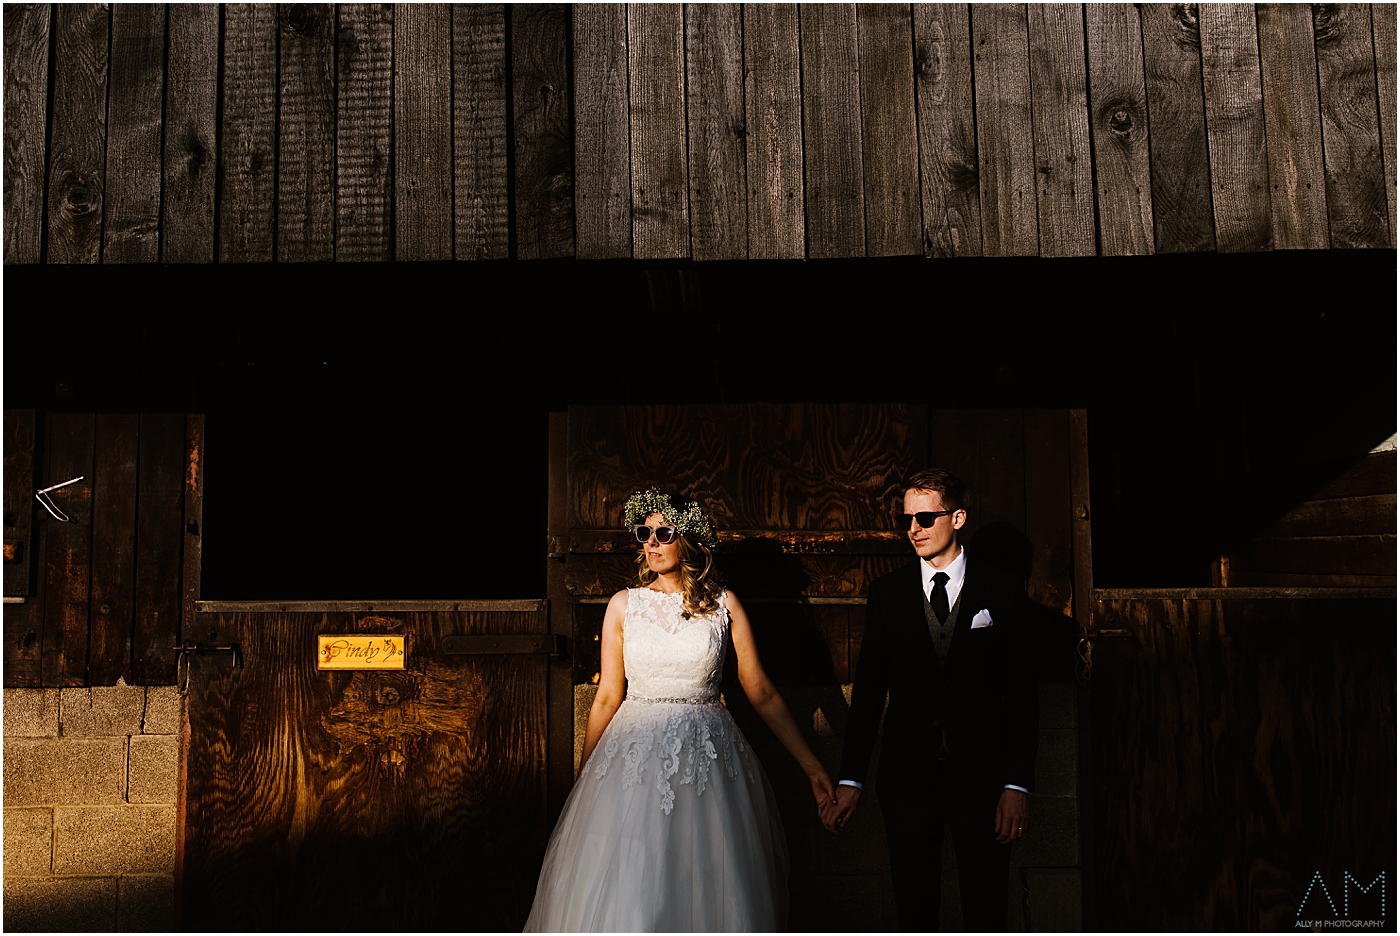 Cool wedding photography in Manchester